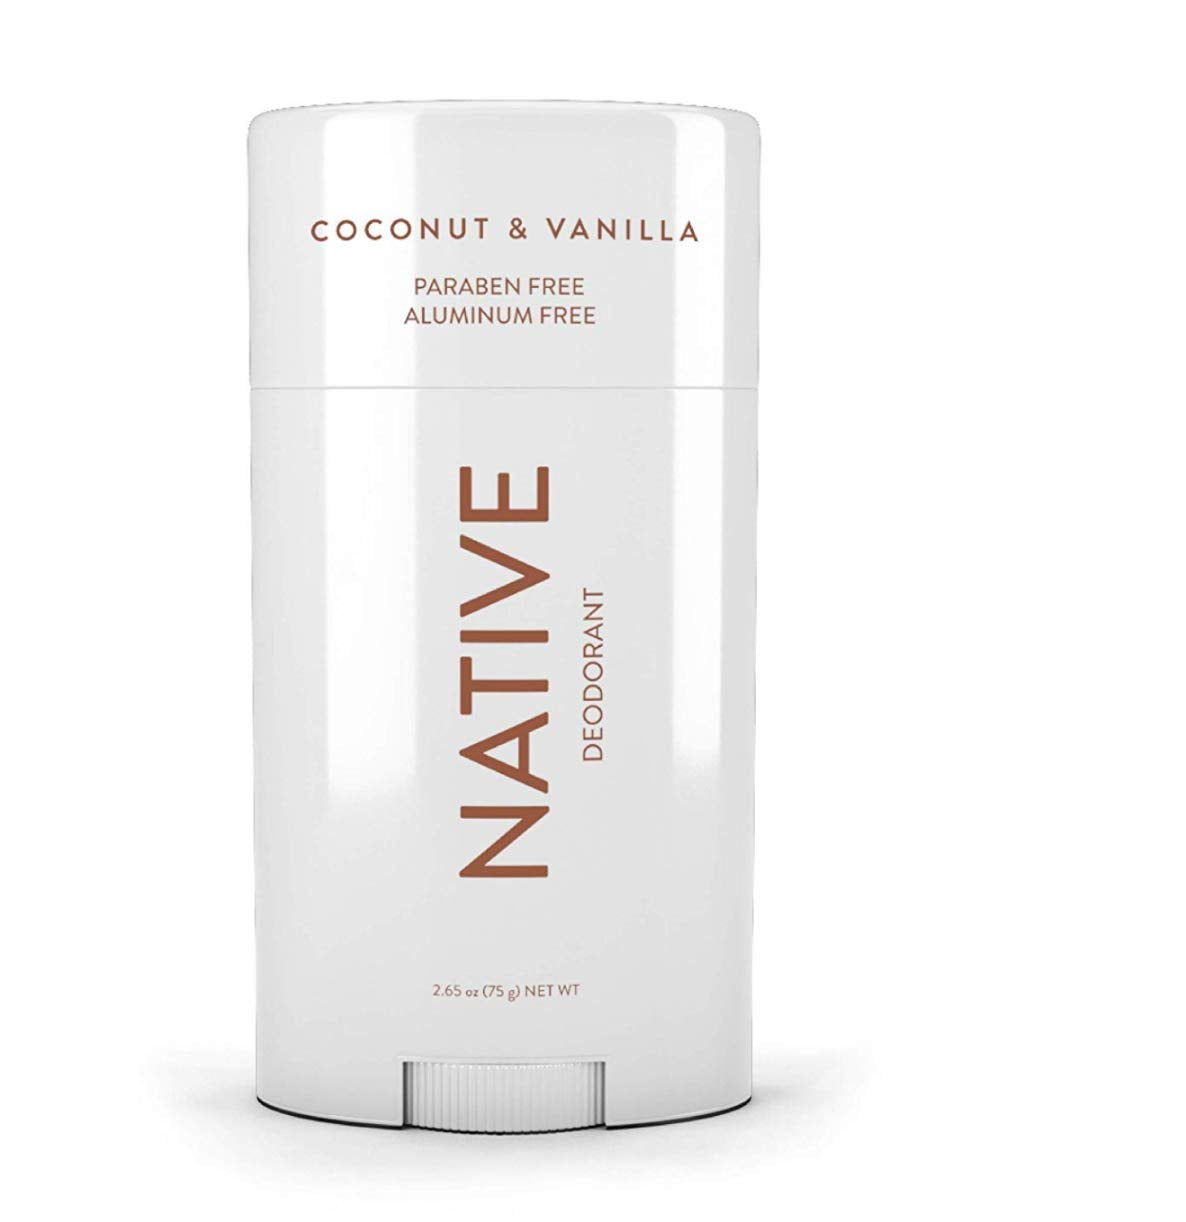 Native Deodorant - Natural Deodorant Made without Aluminum & Parabens - Coconut & Vanilla